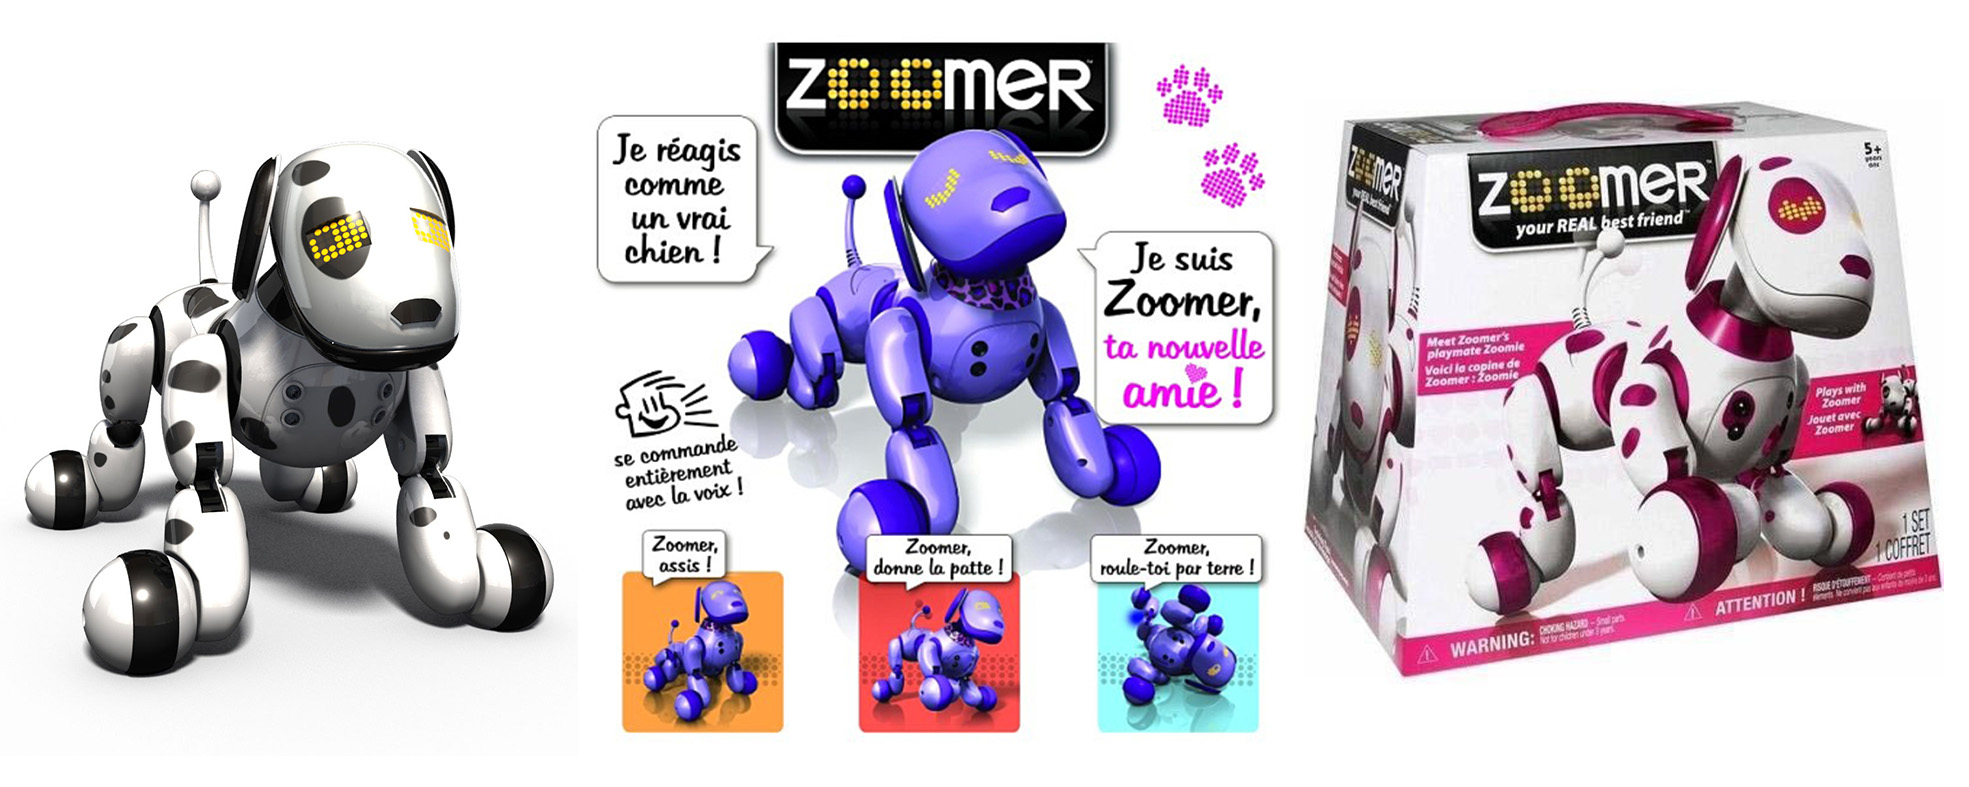 Les robots chiens Zoomer